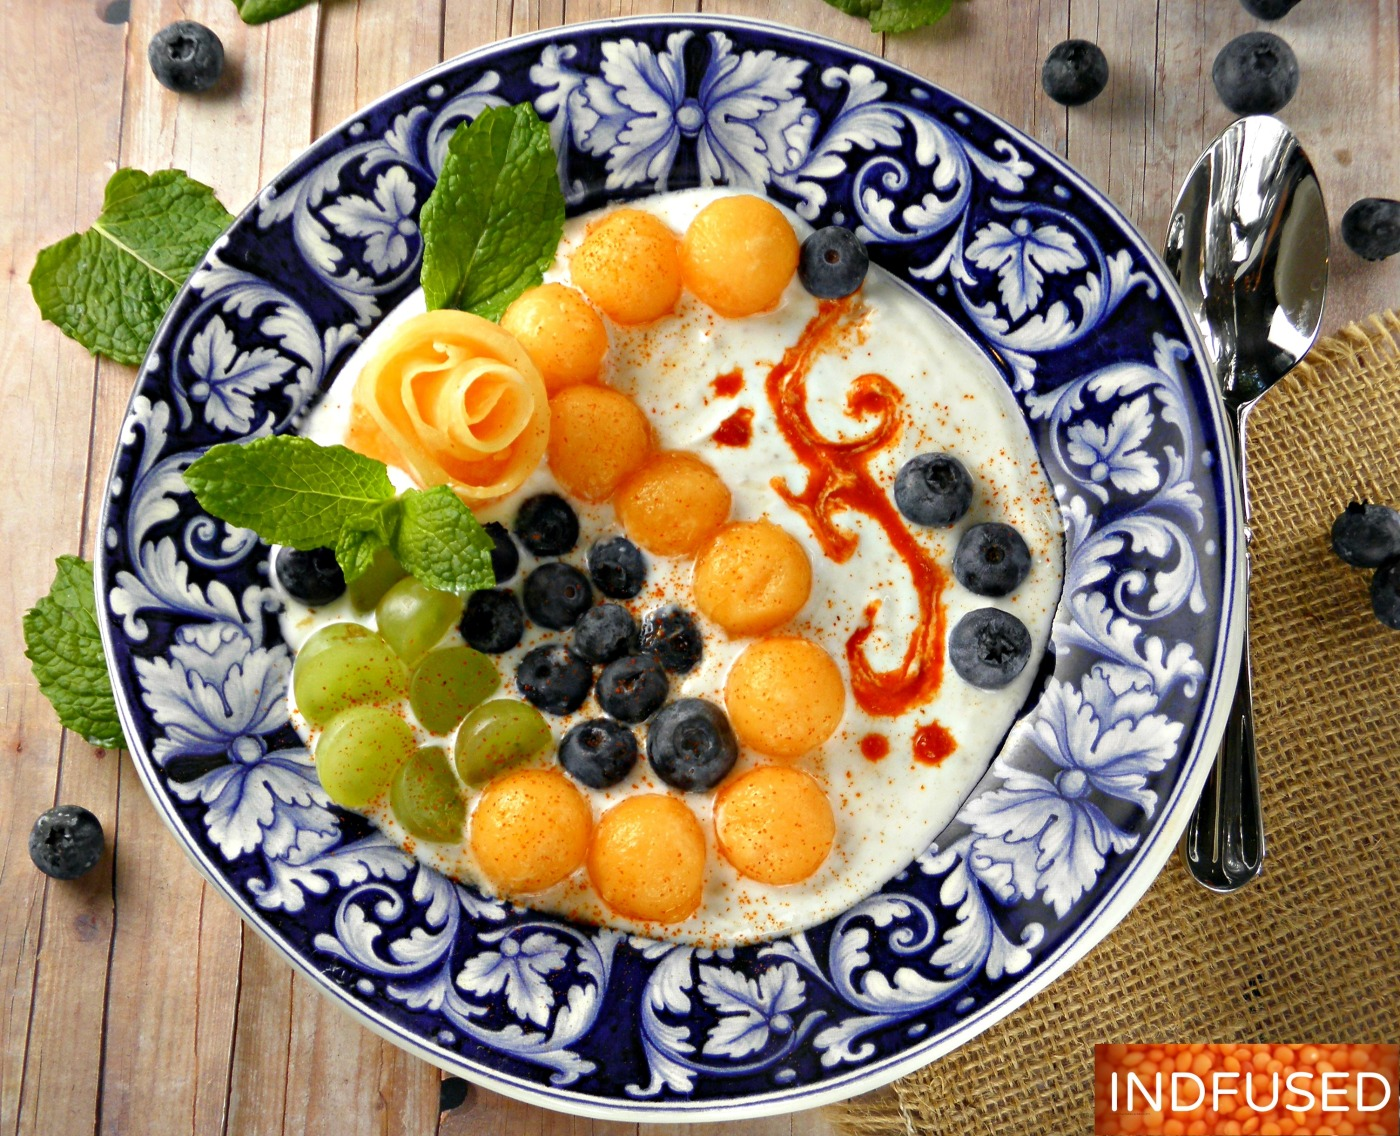 Savory, Indian fusion recipe for melon and fruit raita with Greek yogurt, mint and smoky cumin. easy versatile recipe.